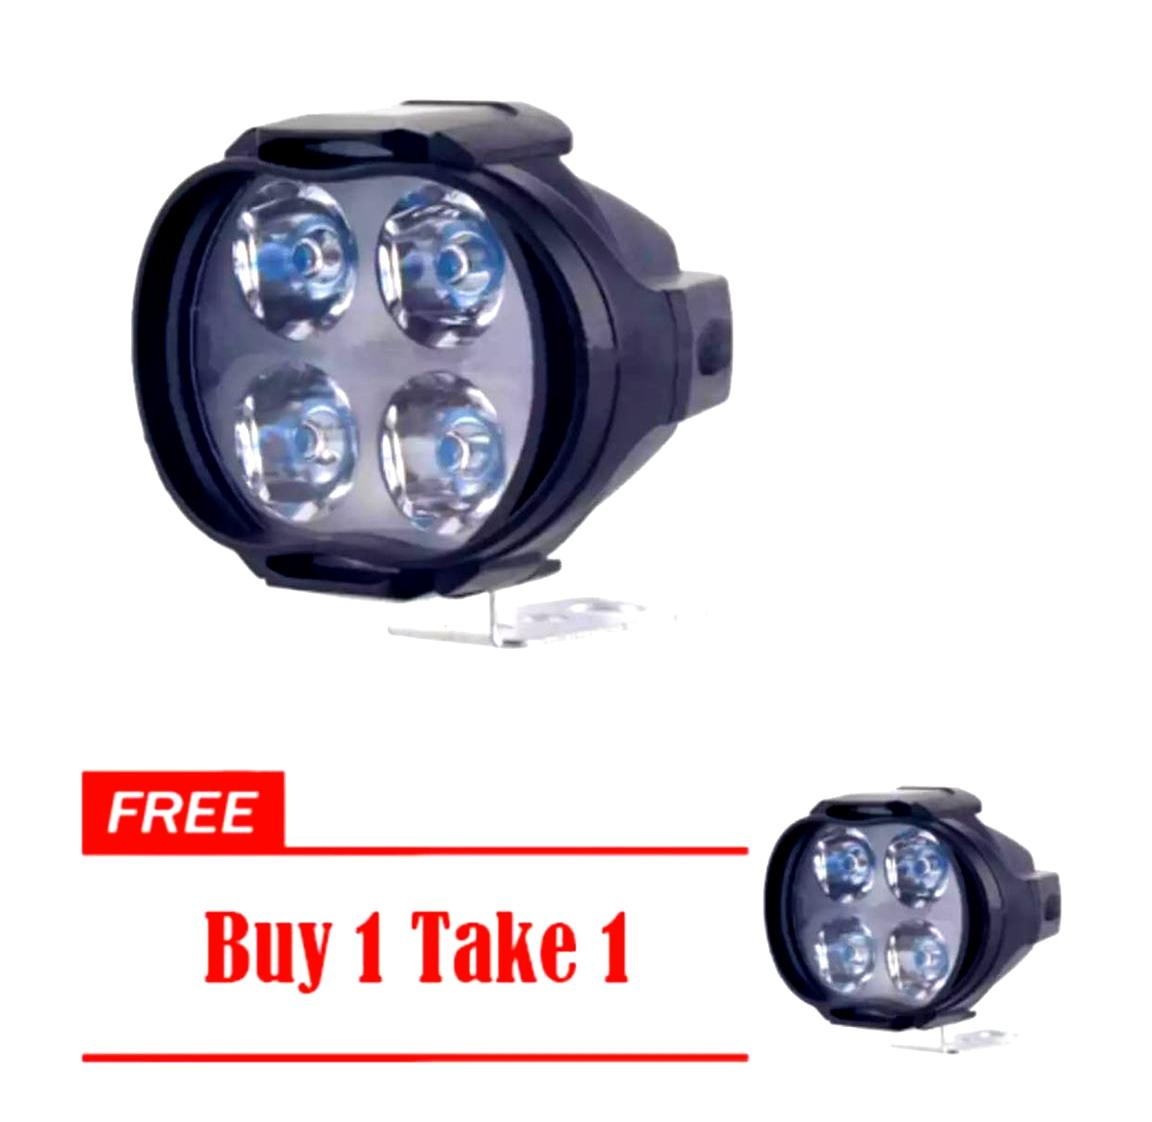 2pcs Tdd-2926 Dc-12v 4 Led Opposite Flash Light Black Cover For Motorcycle Headlight By Motor Access.